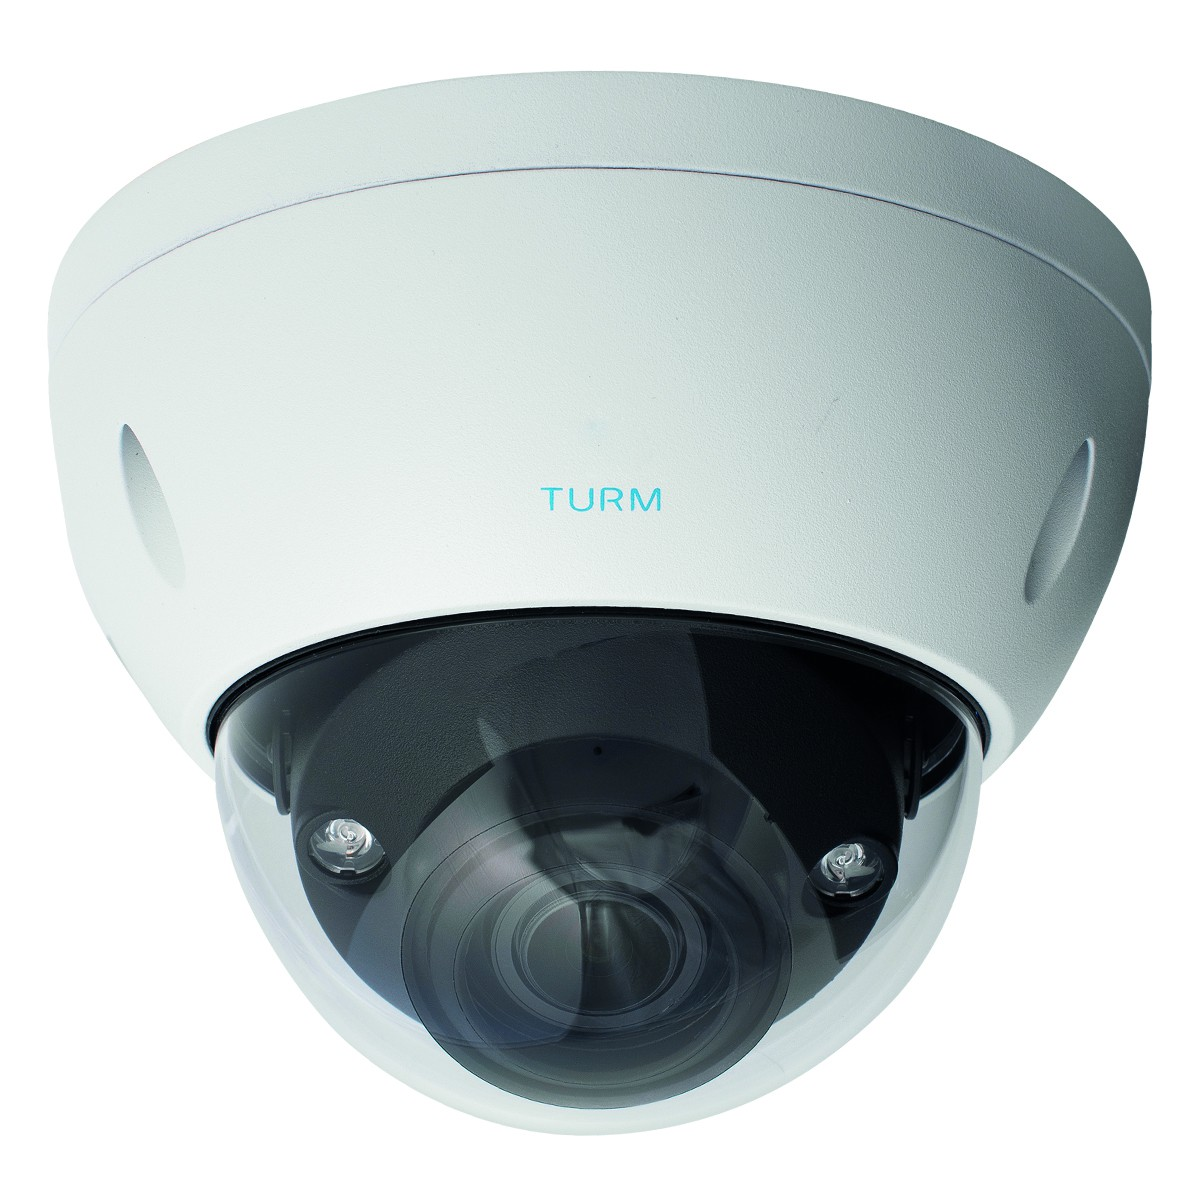 TURM IP Ultra 4 MP Dome Kamera mit intelligenten Videoanalyse und Motorzoom